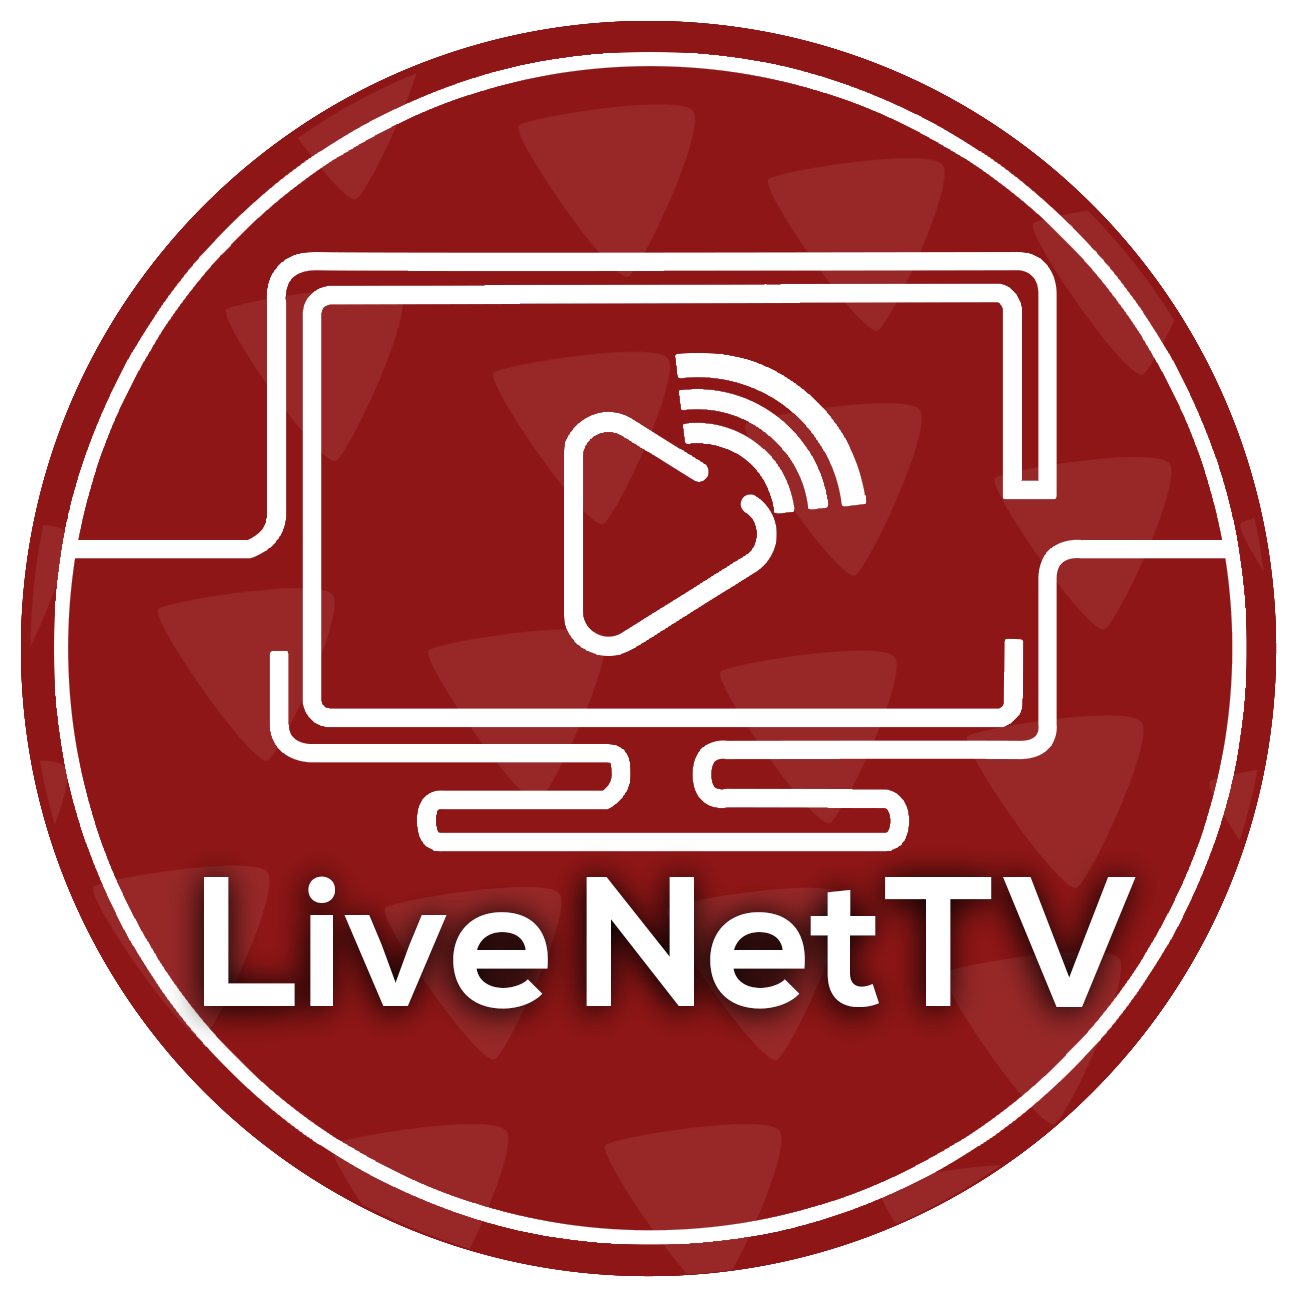 Live NetTV [OFFICIAL Website] - Download Live NetTV 4 7 APK Latest